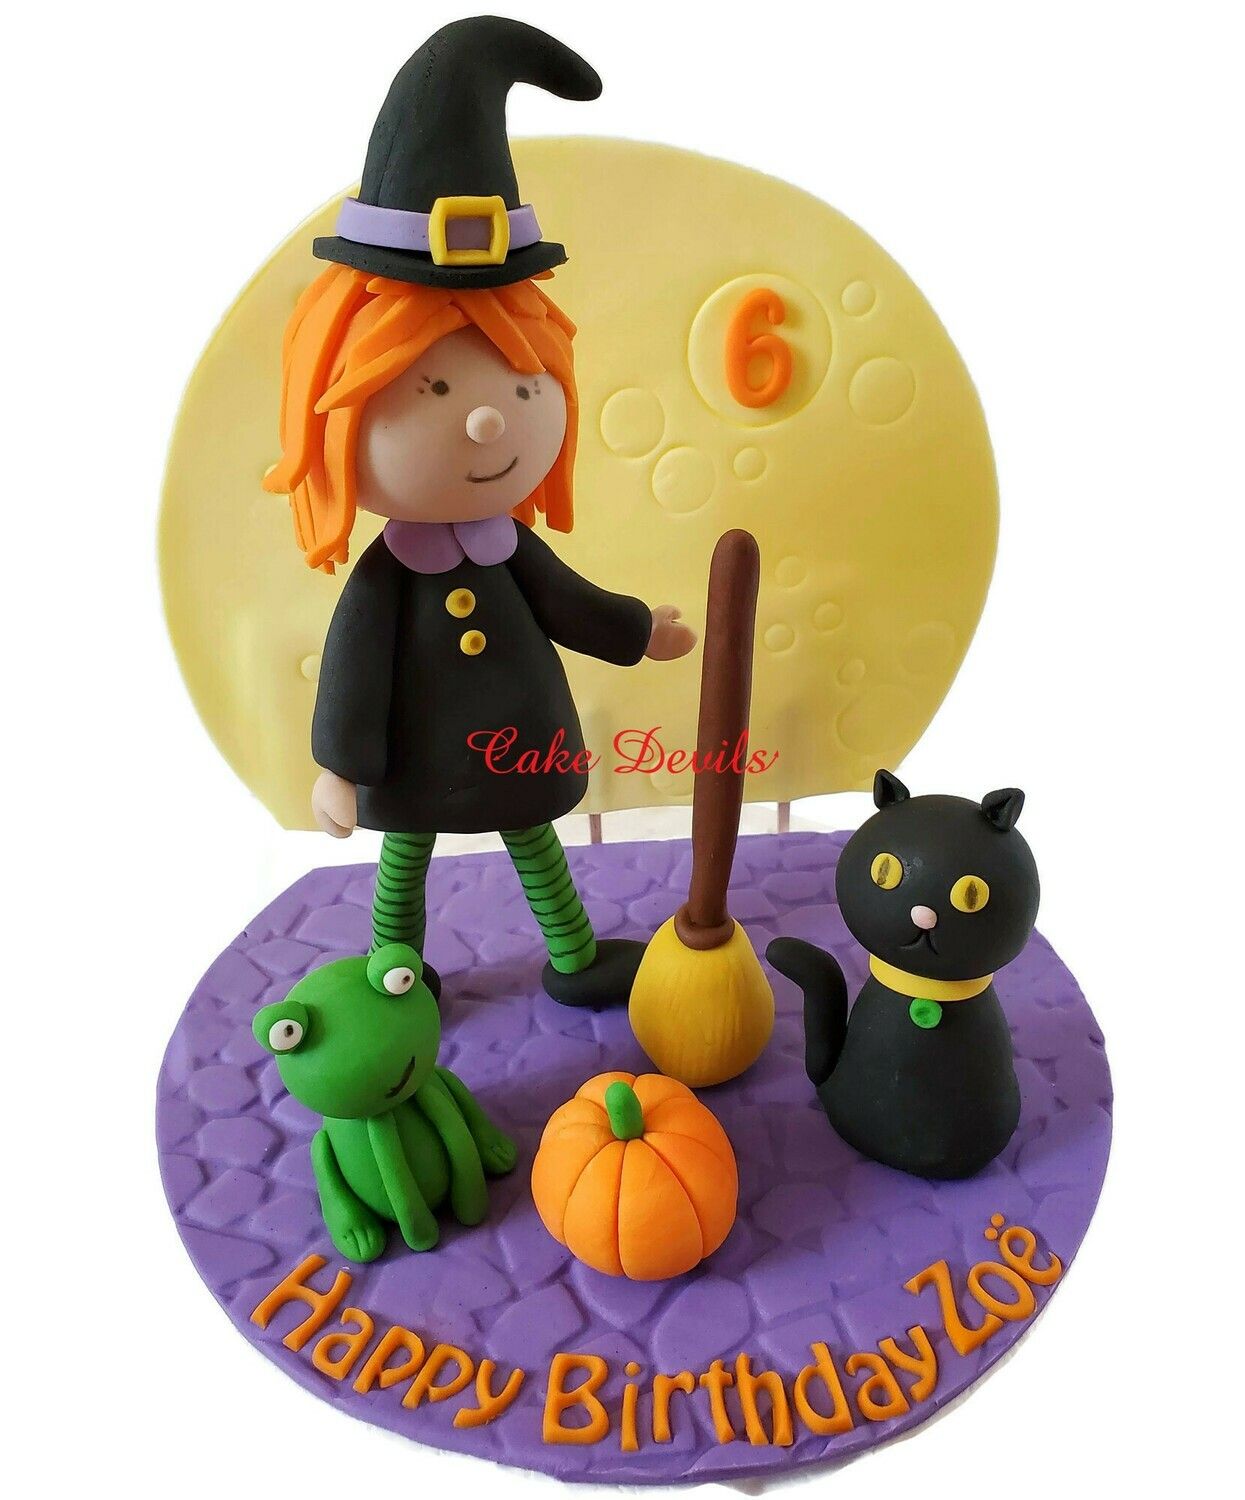 Fondant Little Girl Witch Halloween Cake Topper with Broom, Frog, Black Cat, Pumpkin, Spooky Tree, Moon, and Cobblestone Base